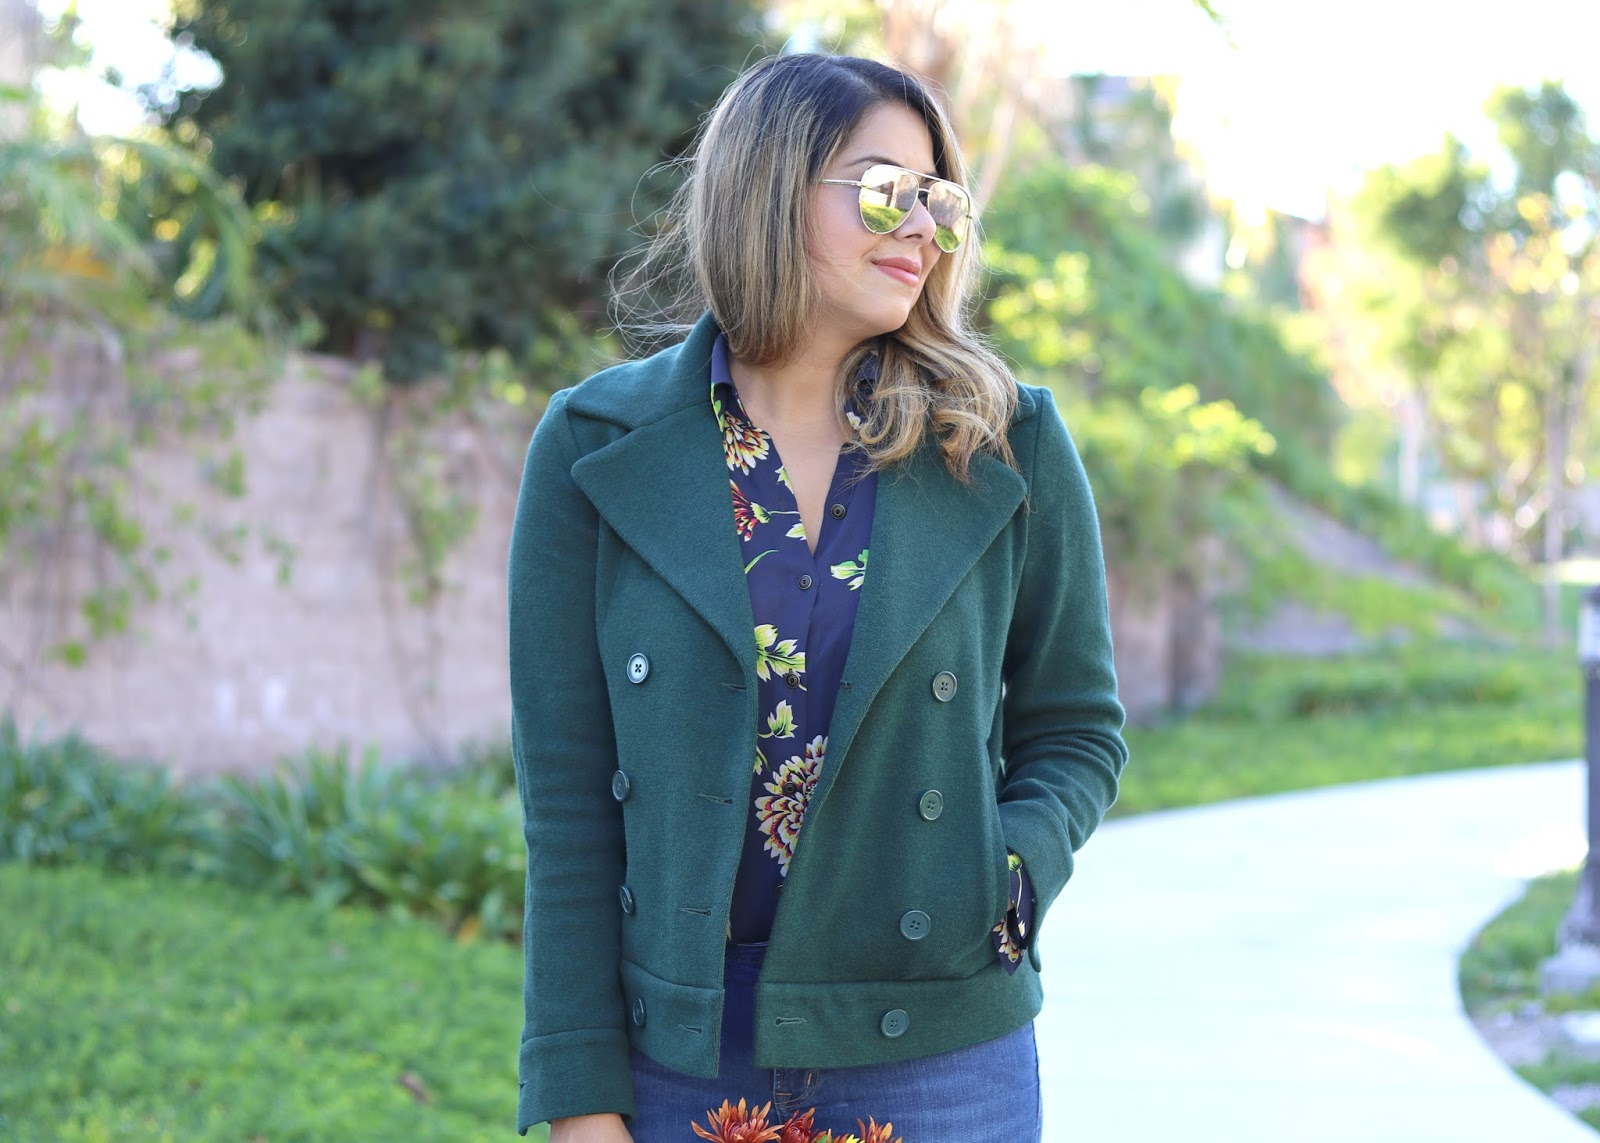 green and burgundy outfit, San Diego streetstyle